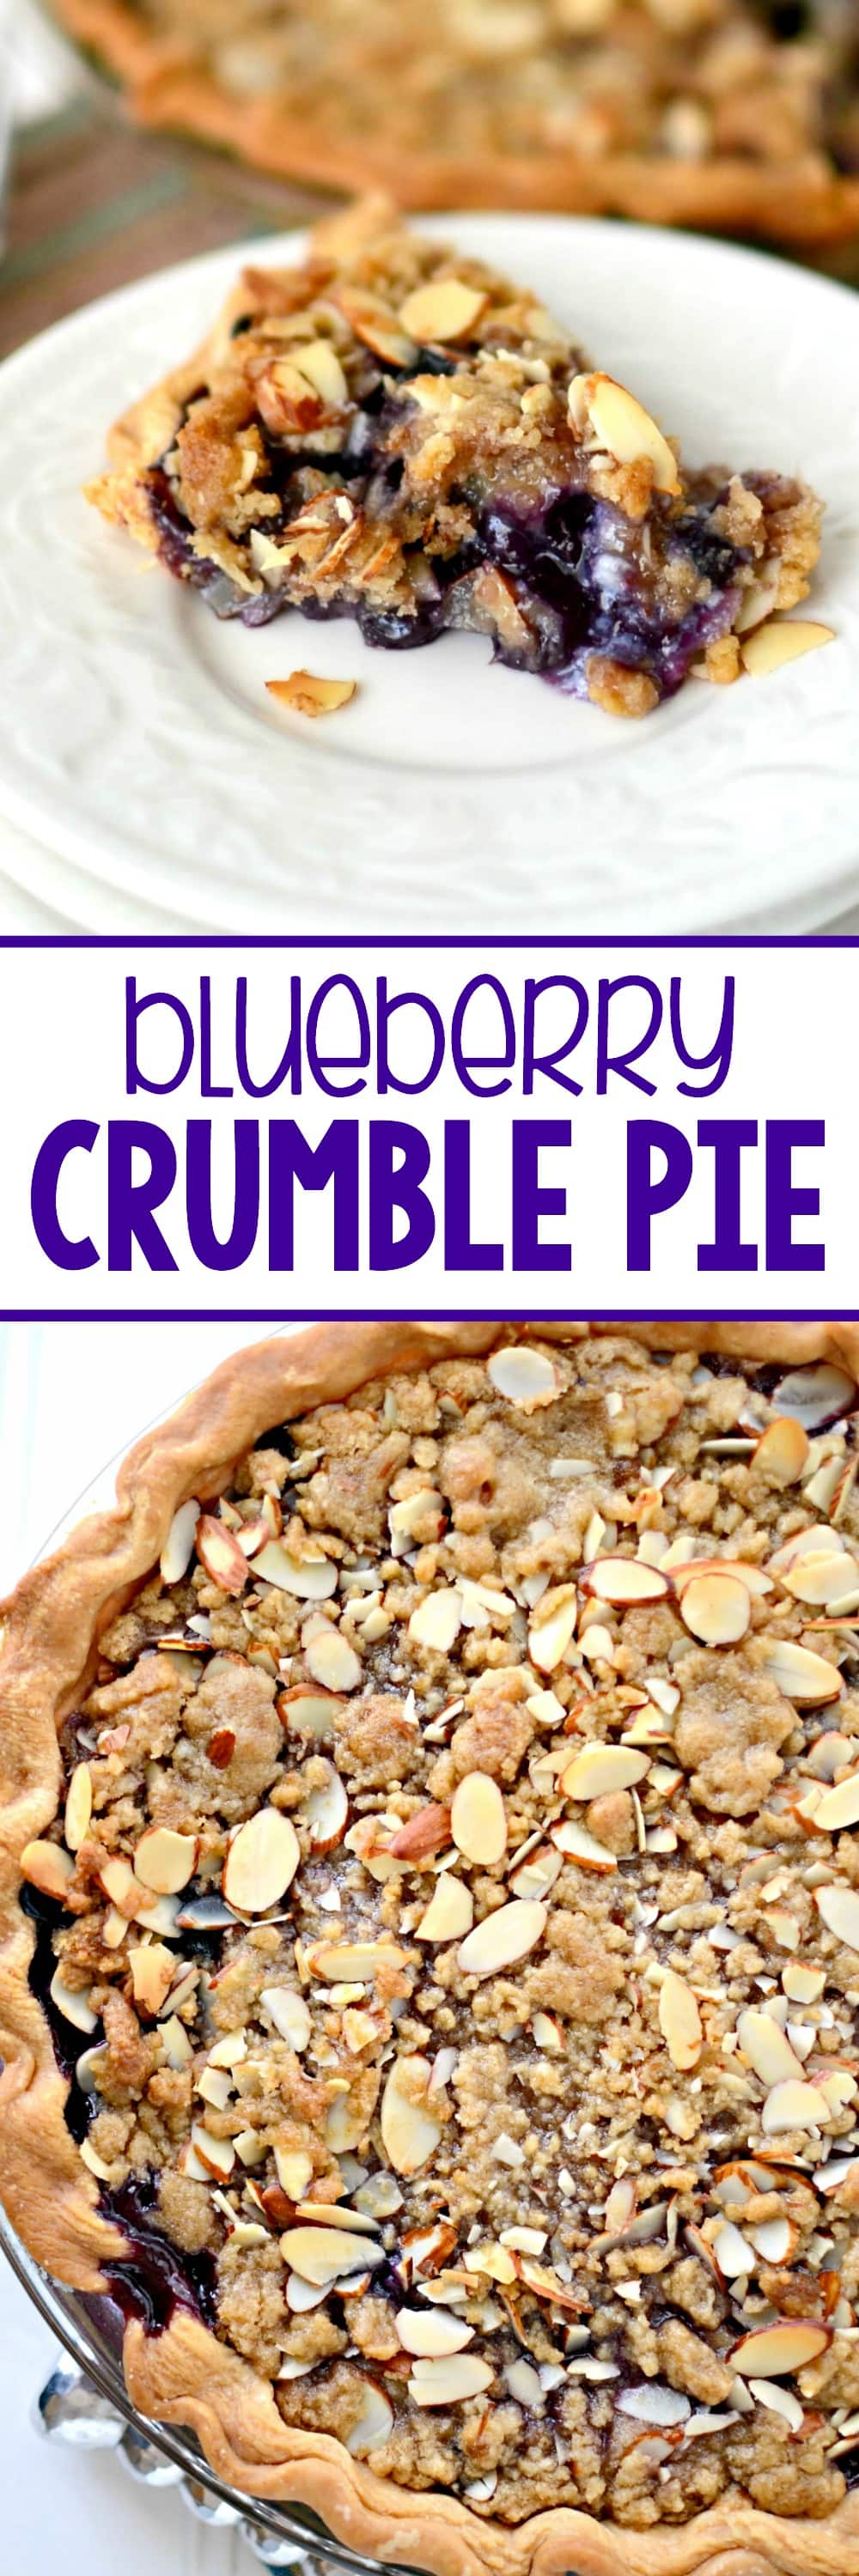 Blueberry Crumble Pie - one of the best pies ever! A fresh blueberry ...